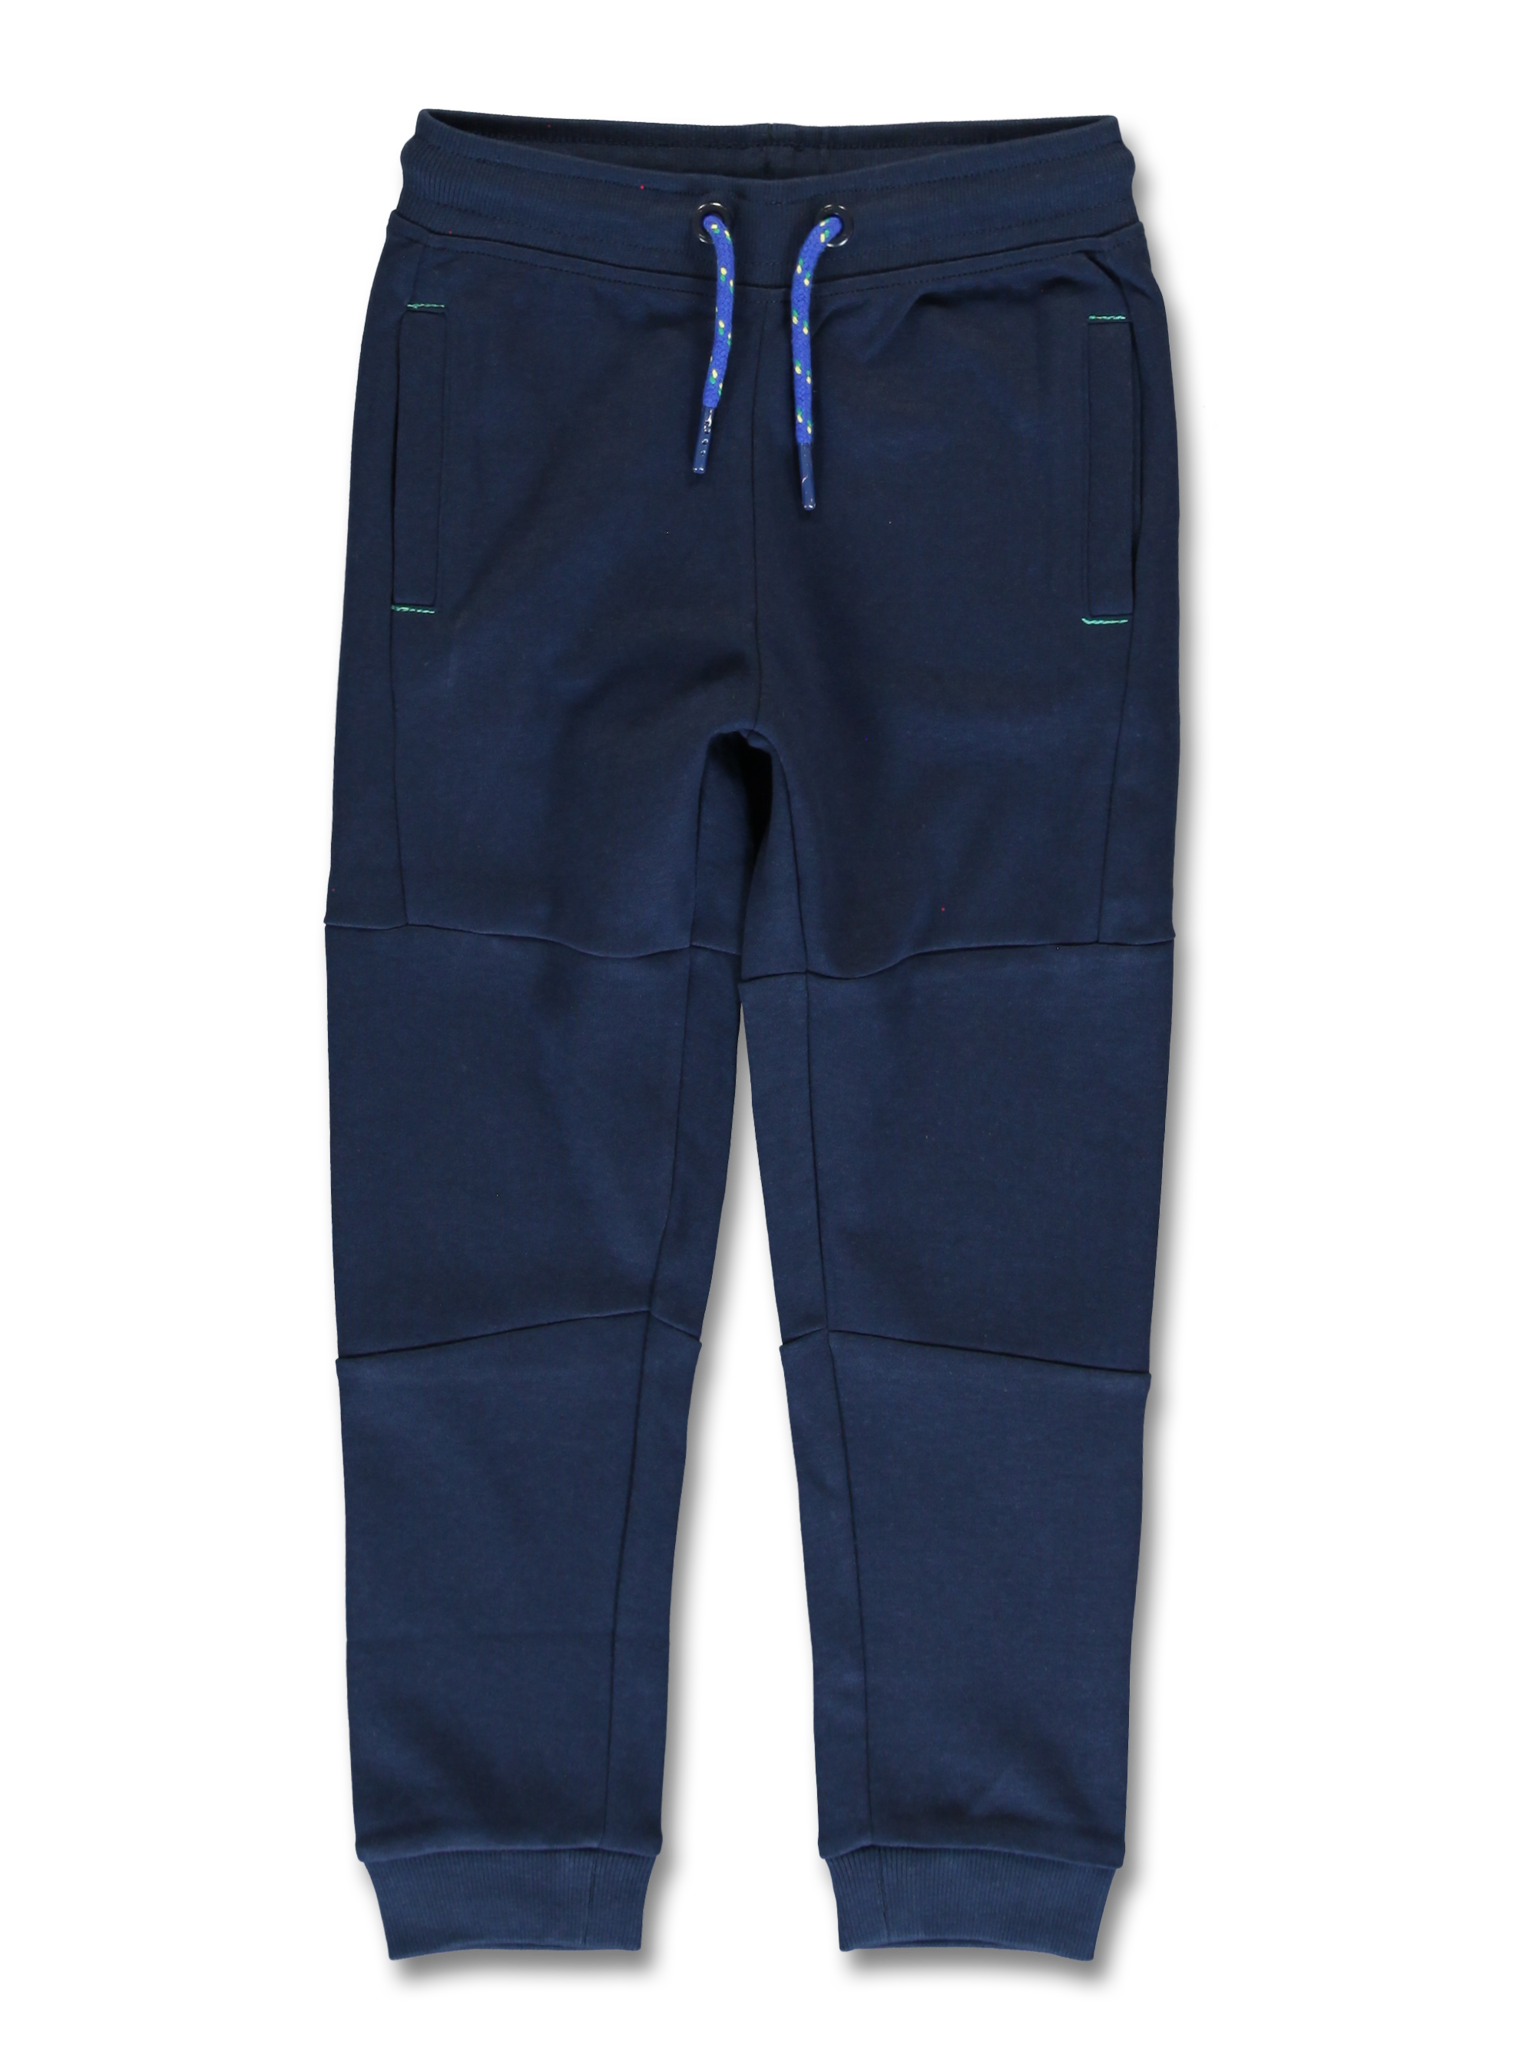 All Brands | Winterproducts Small Boys | Jogging Pant | 12 pcs/box